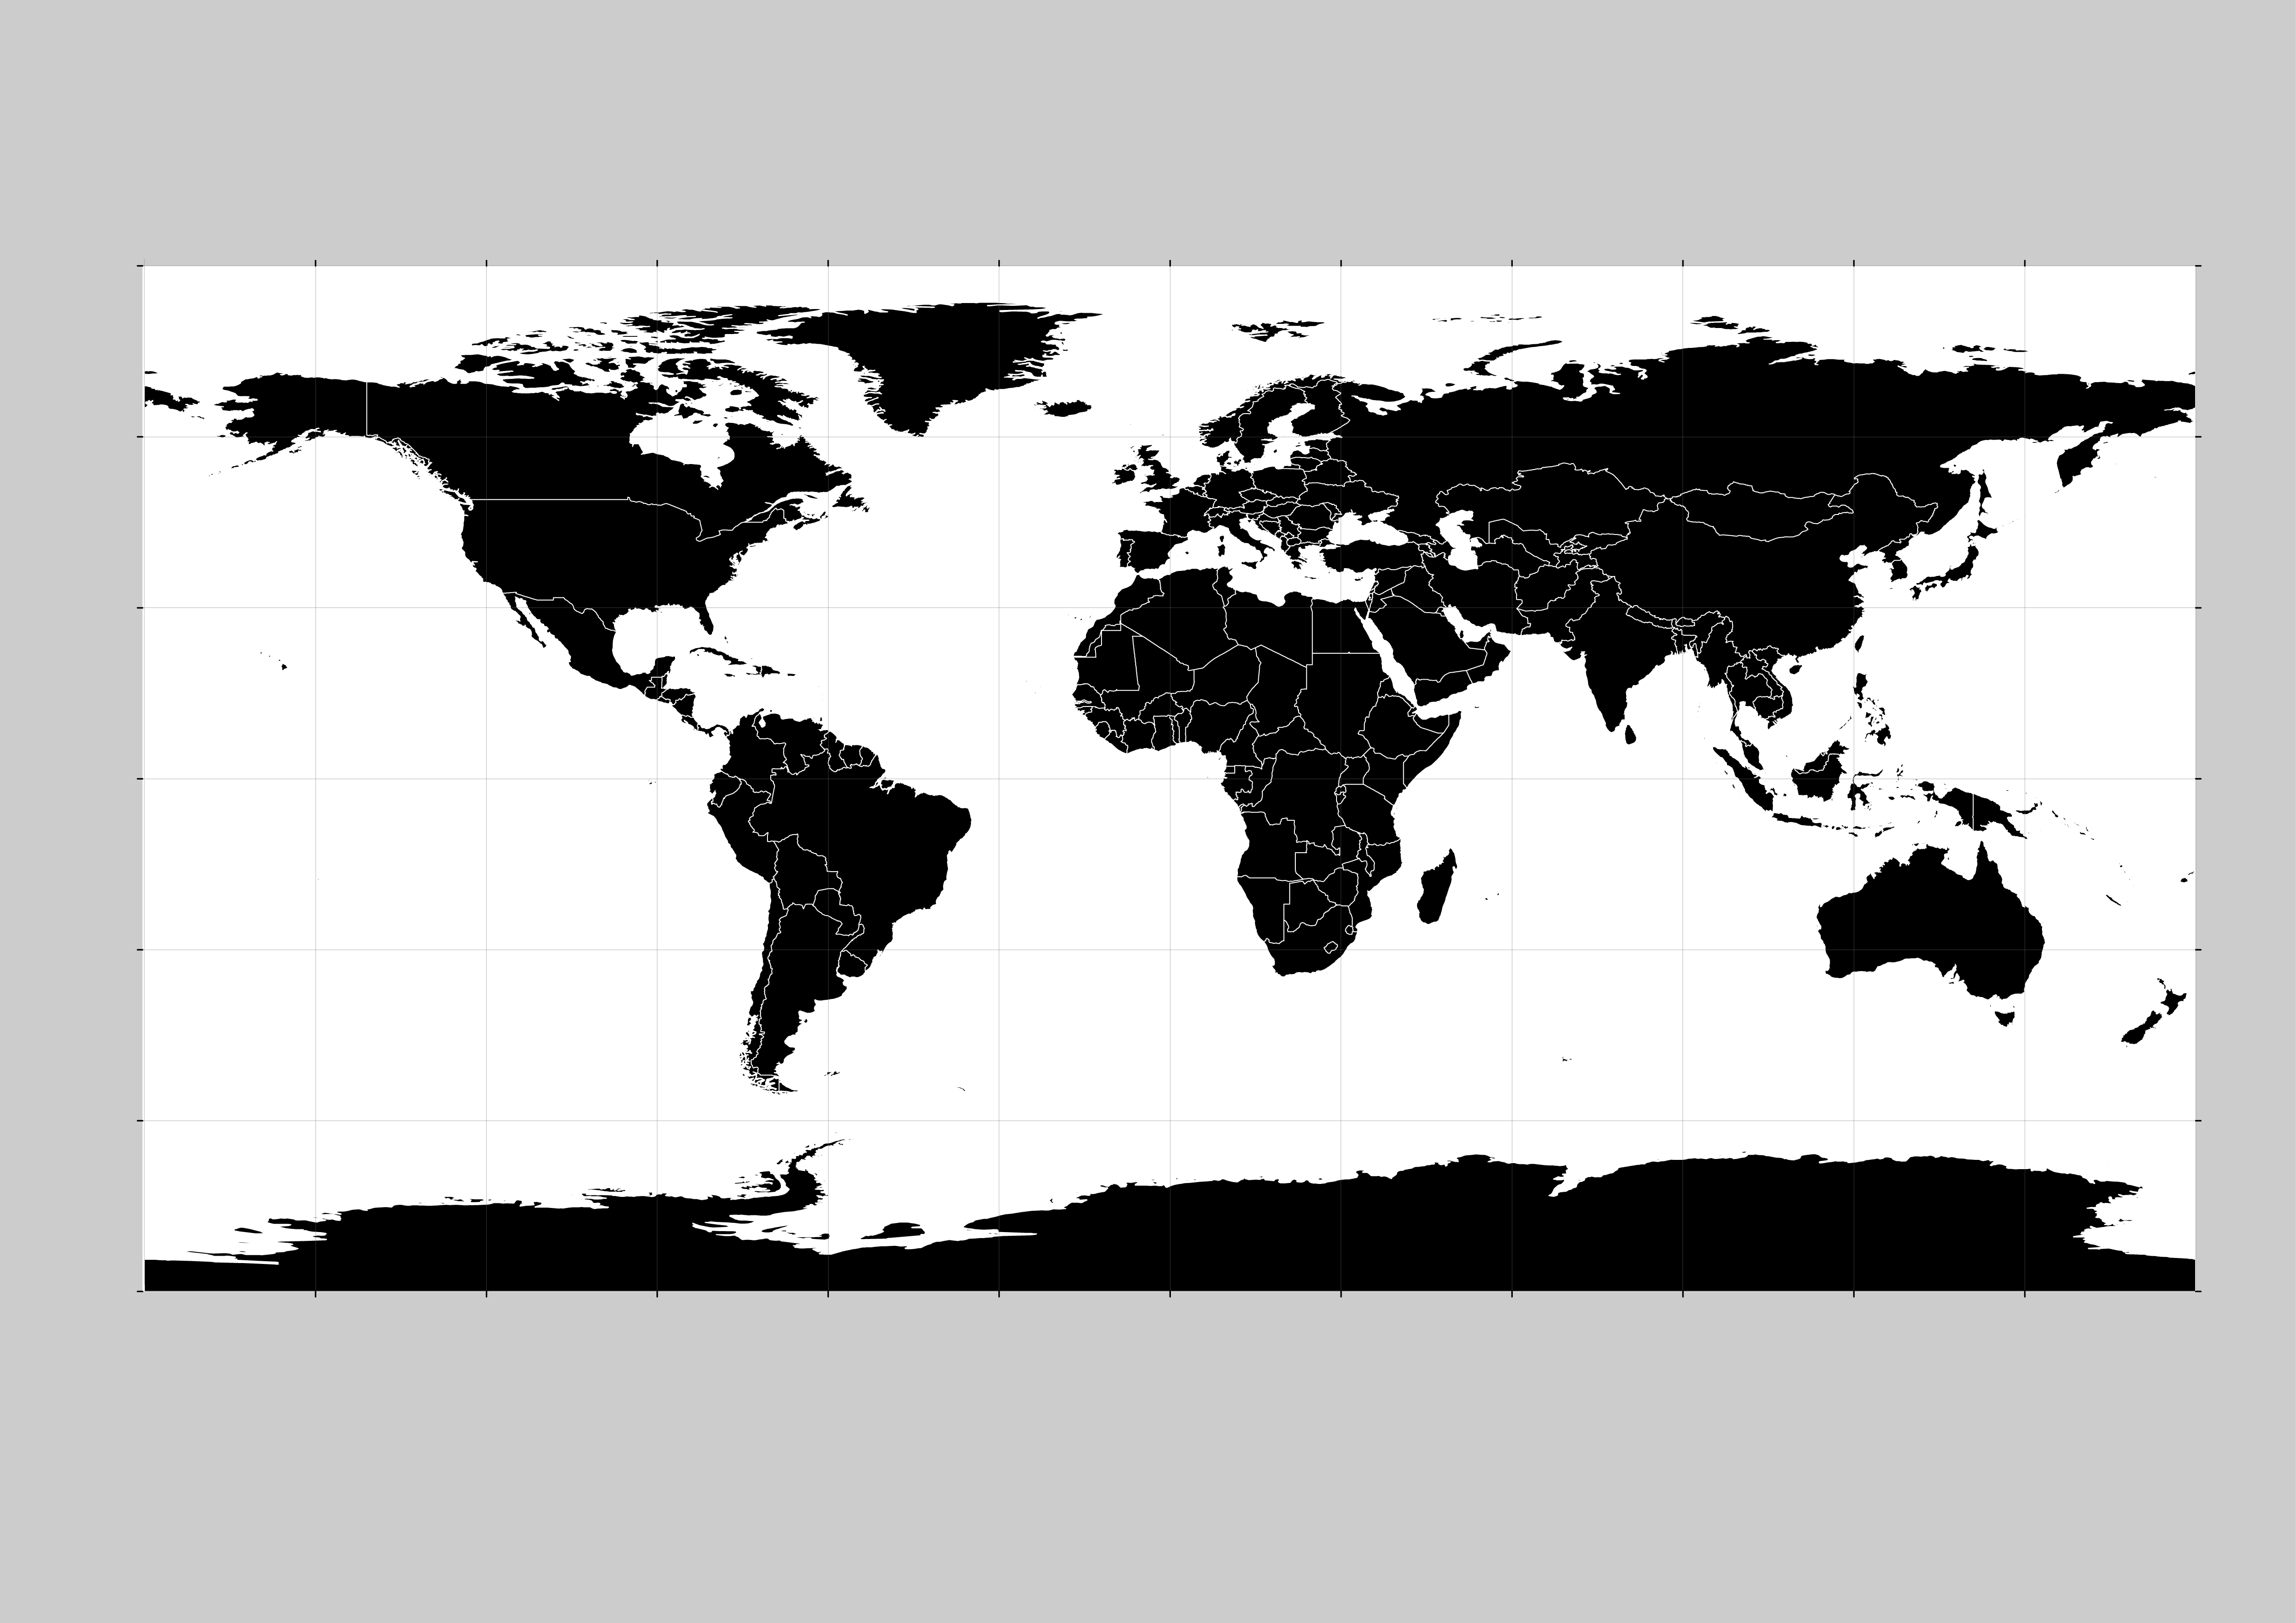 World Map Black And White Vector